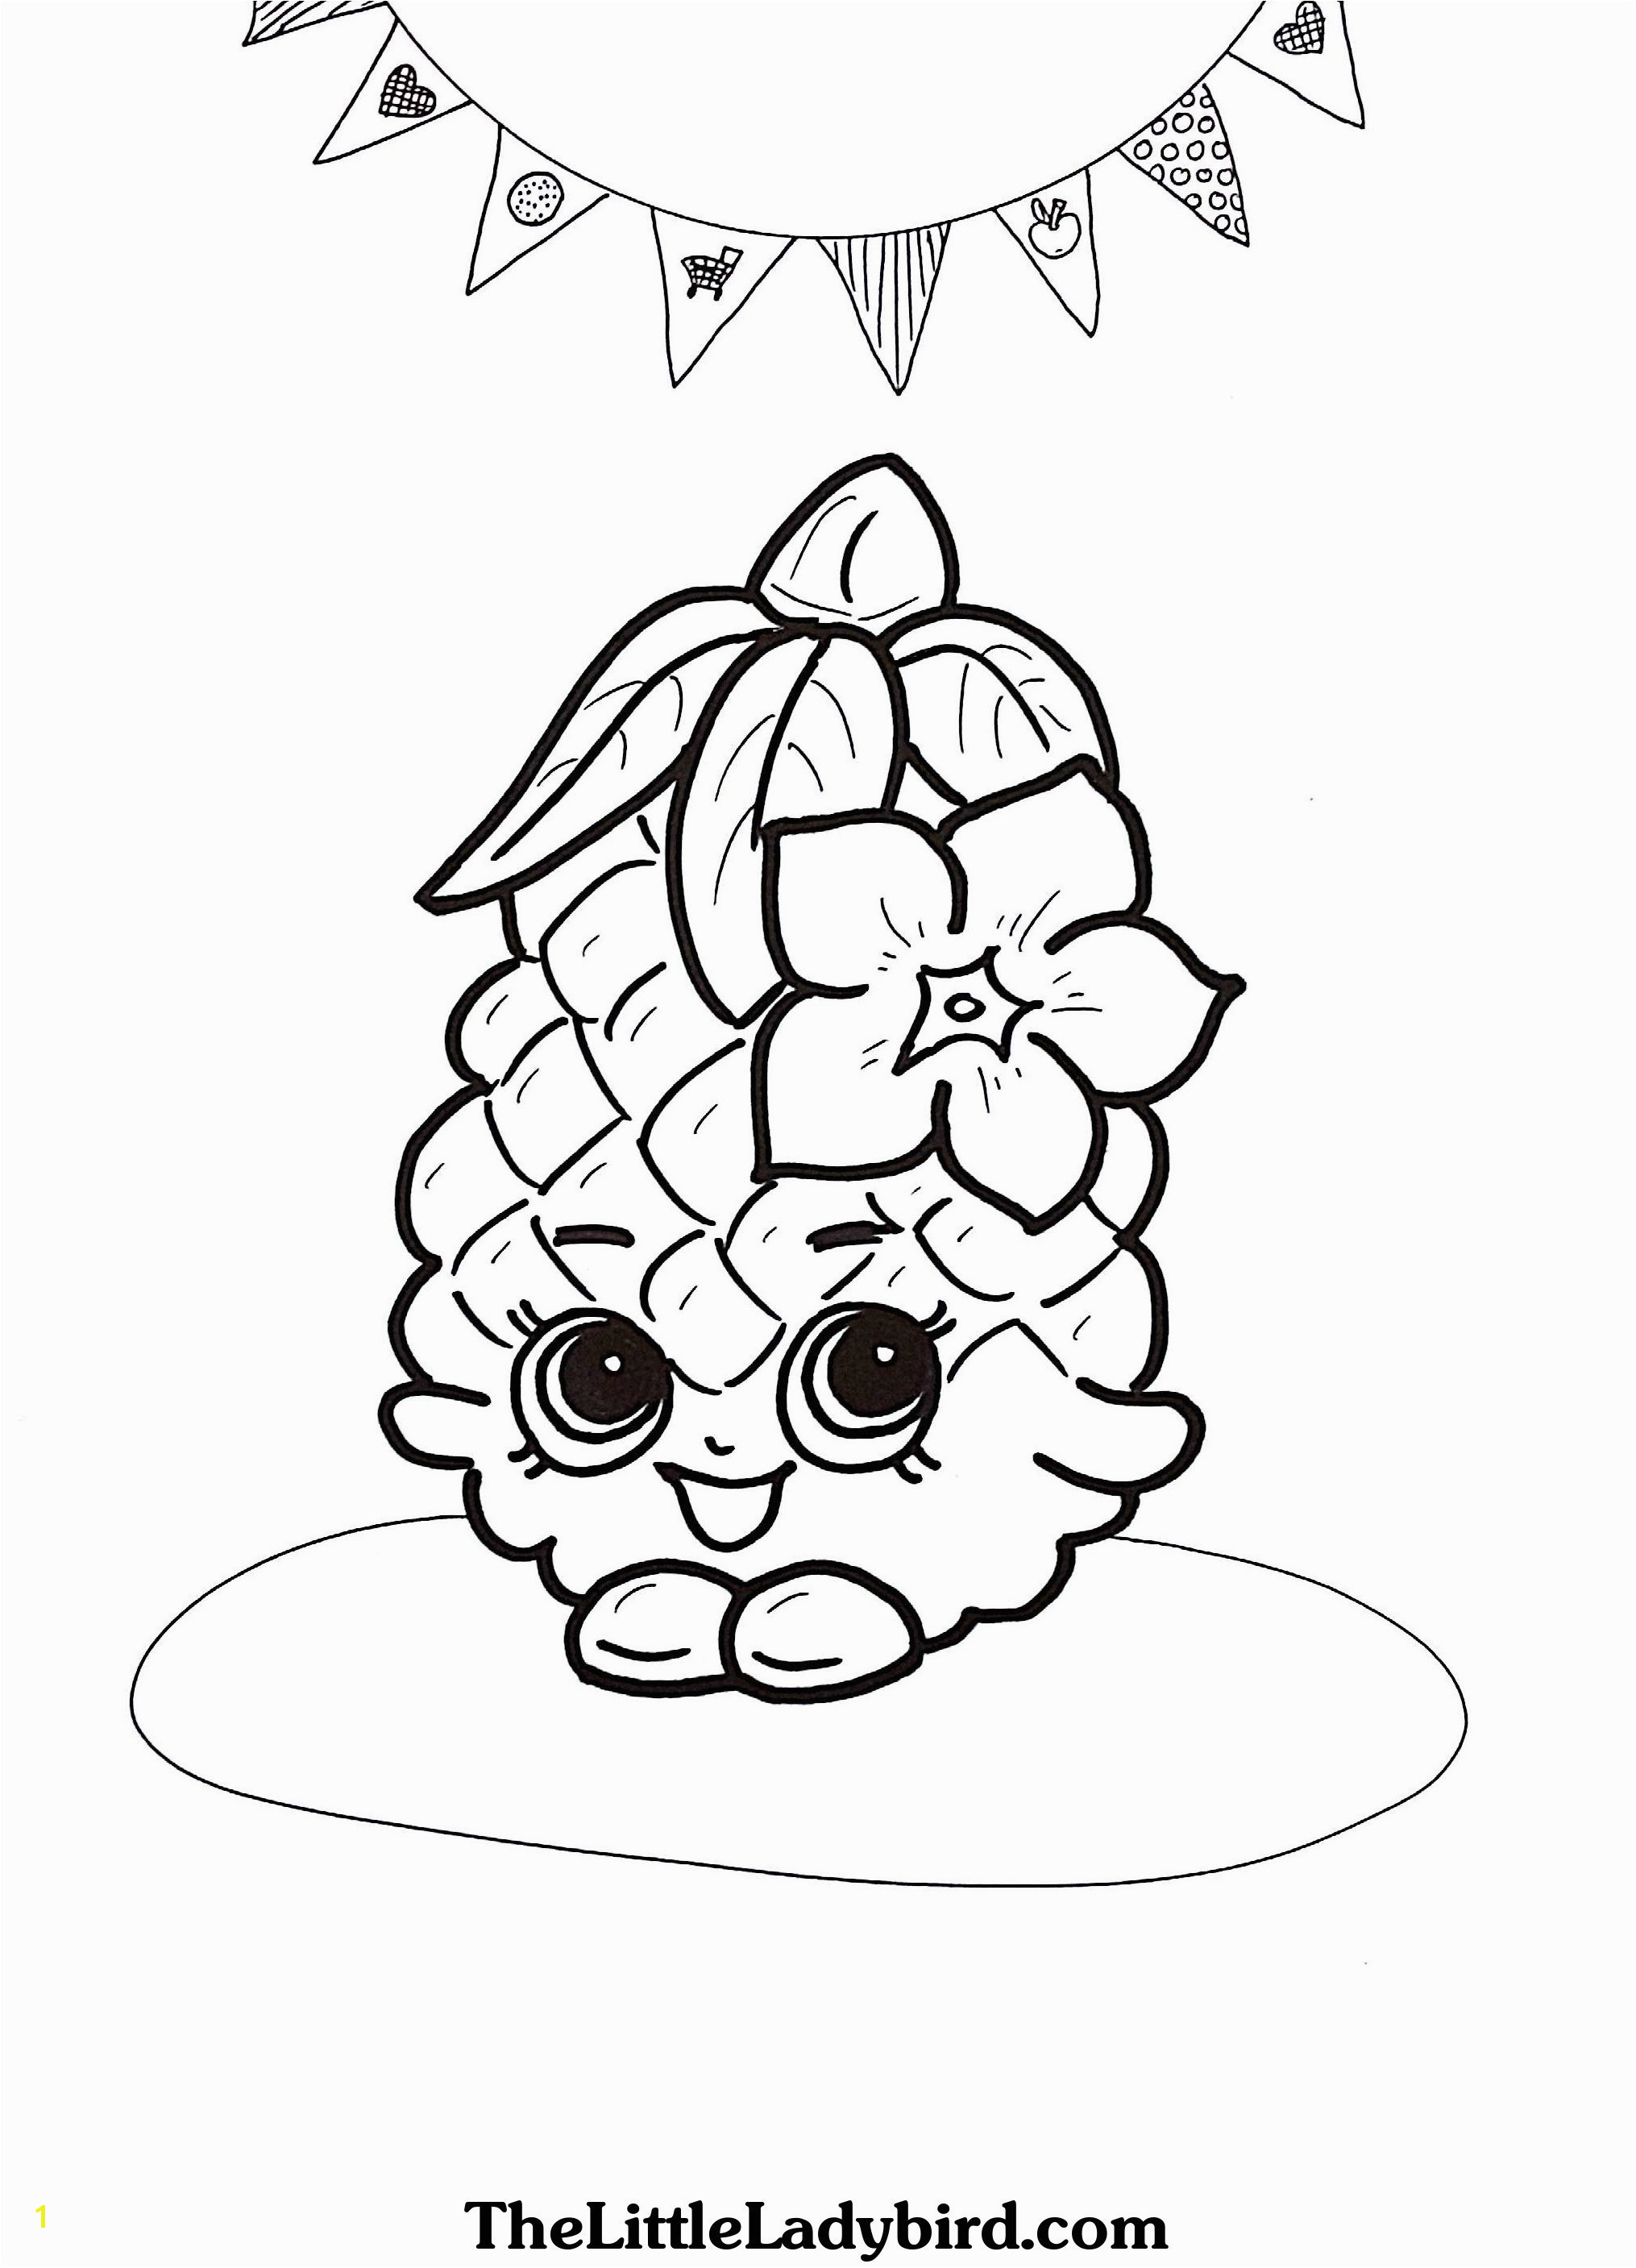 Vancouver Canucks Coloring Pages Lovely Royalty Free Coloring Pages Unique Elegant Beautiful Best 0d Stock